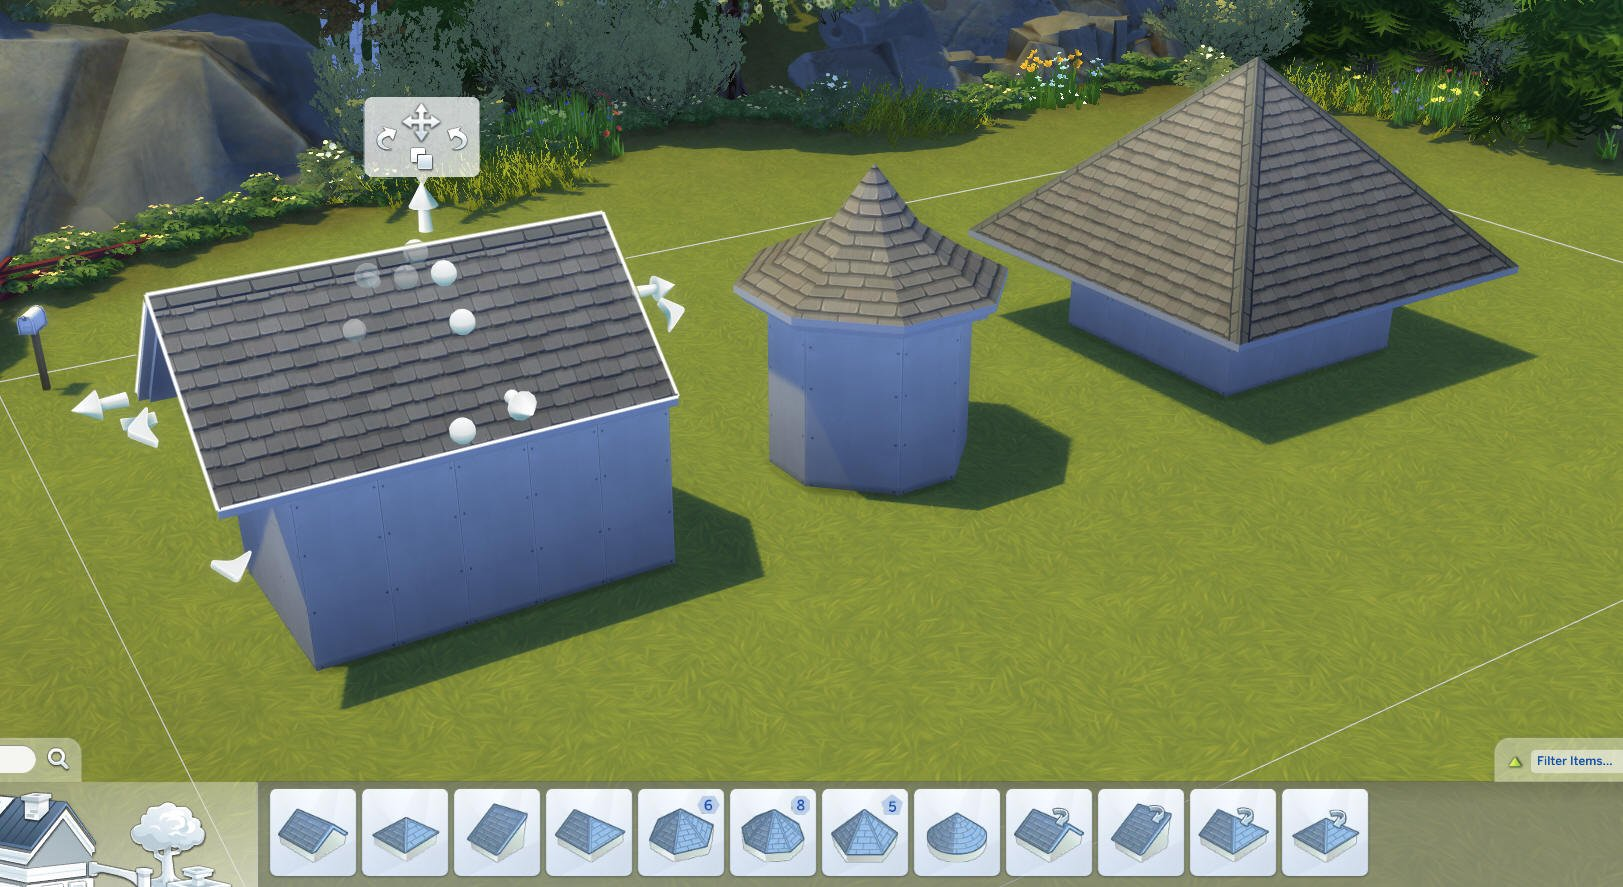 The Sims 4 Simguruhouts Shows Off New Roof Types Simsvip